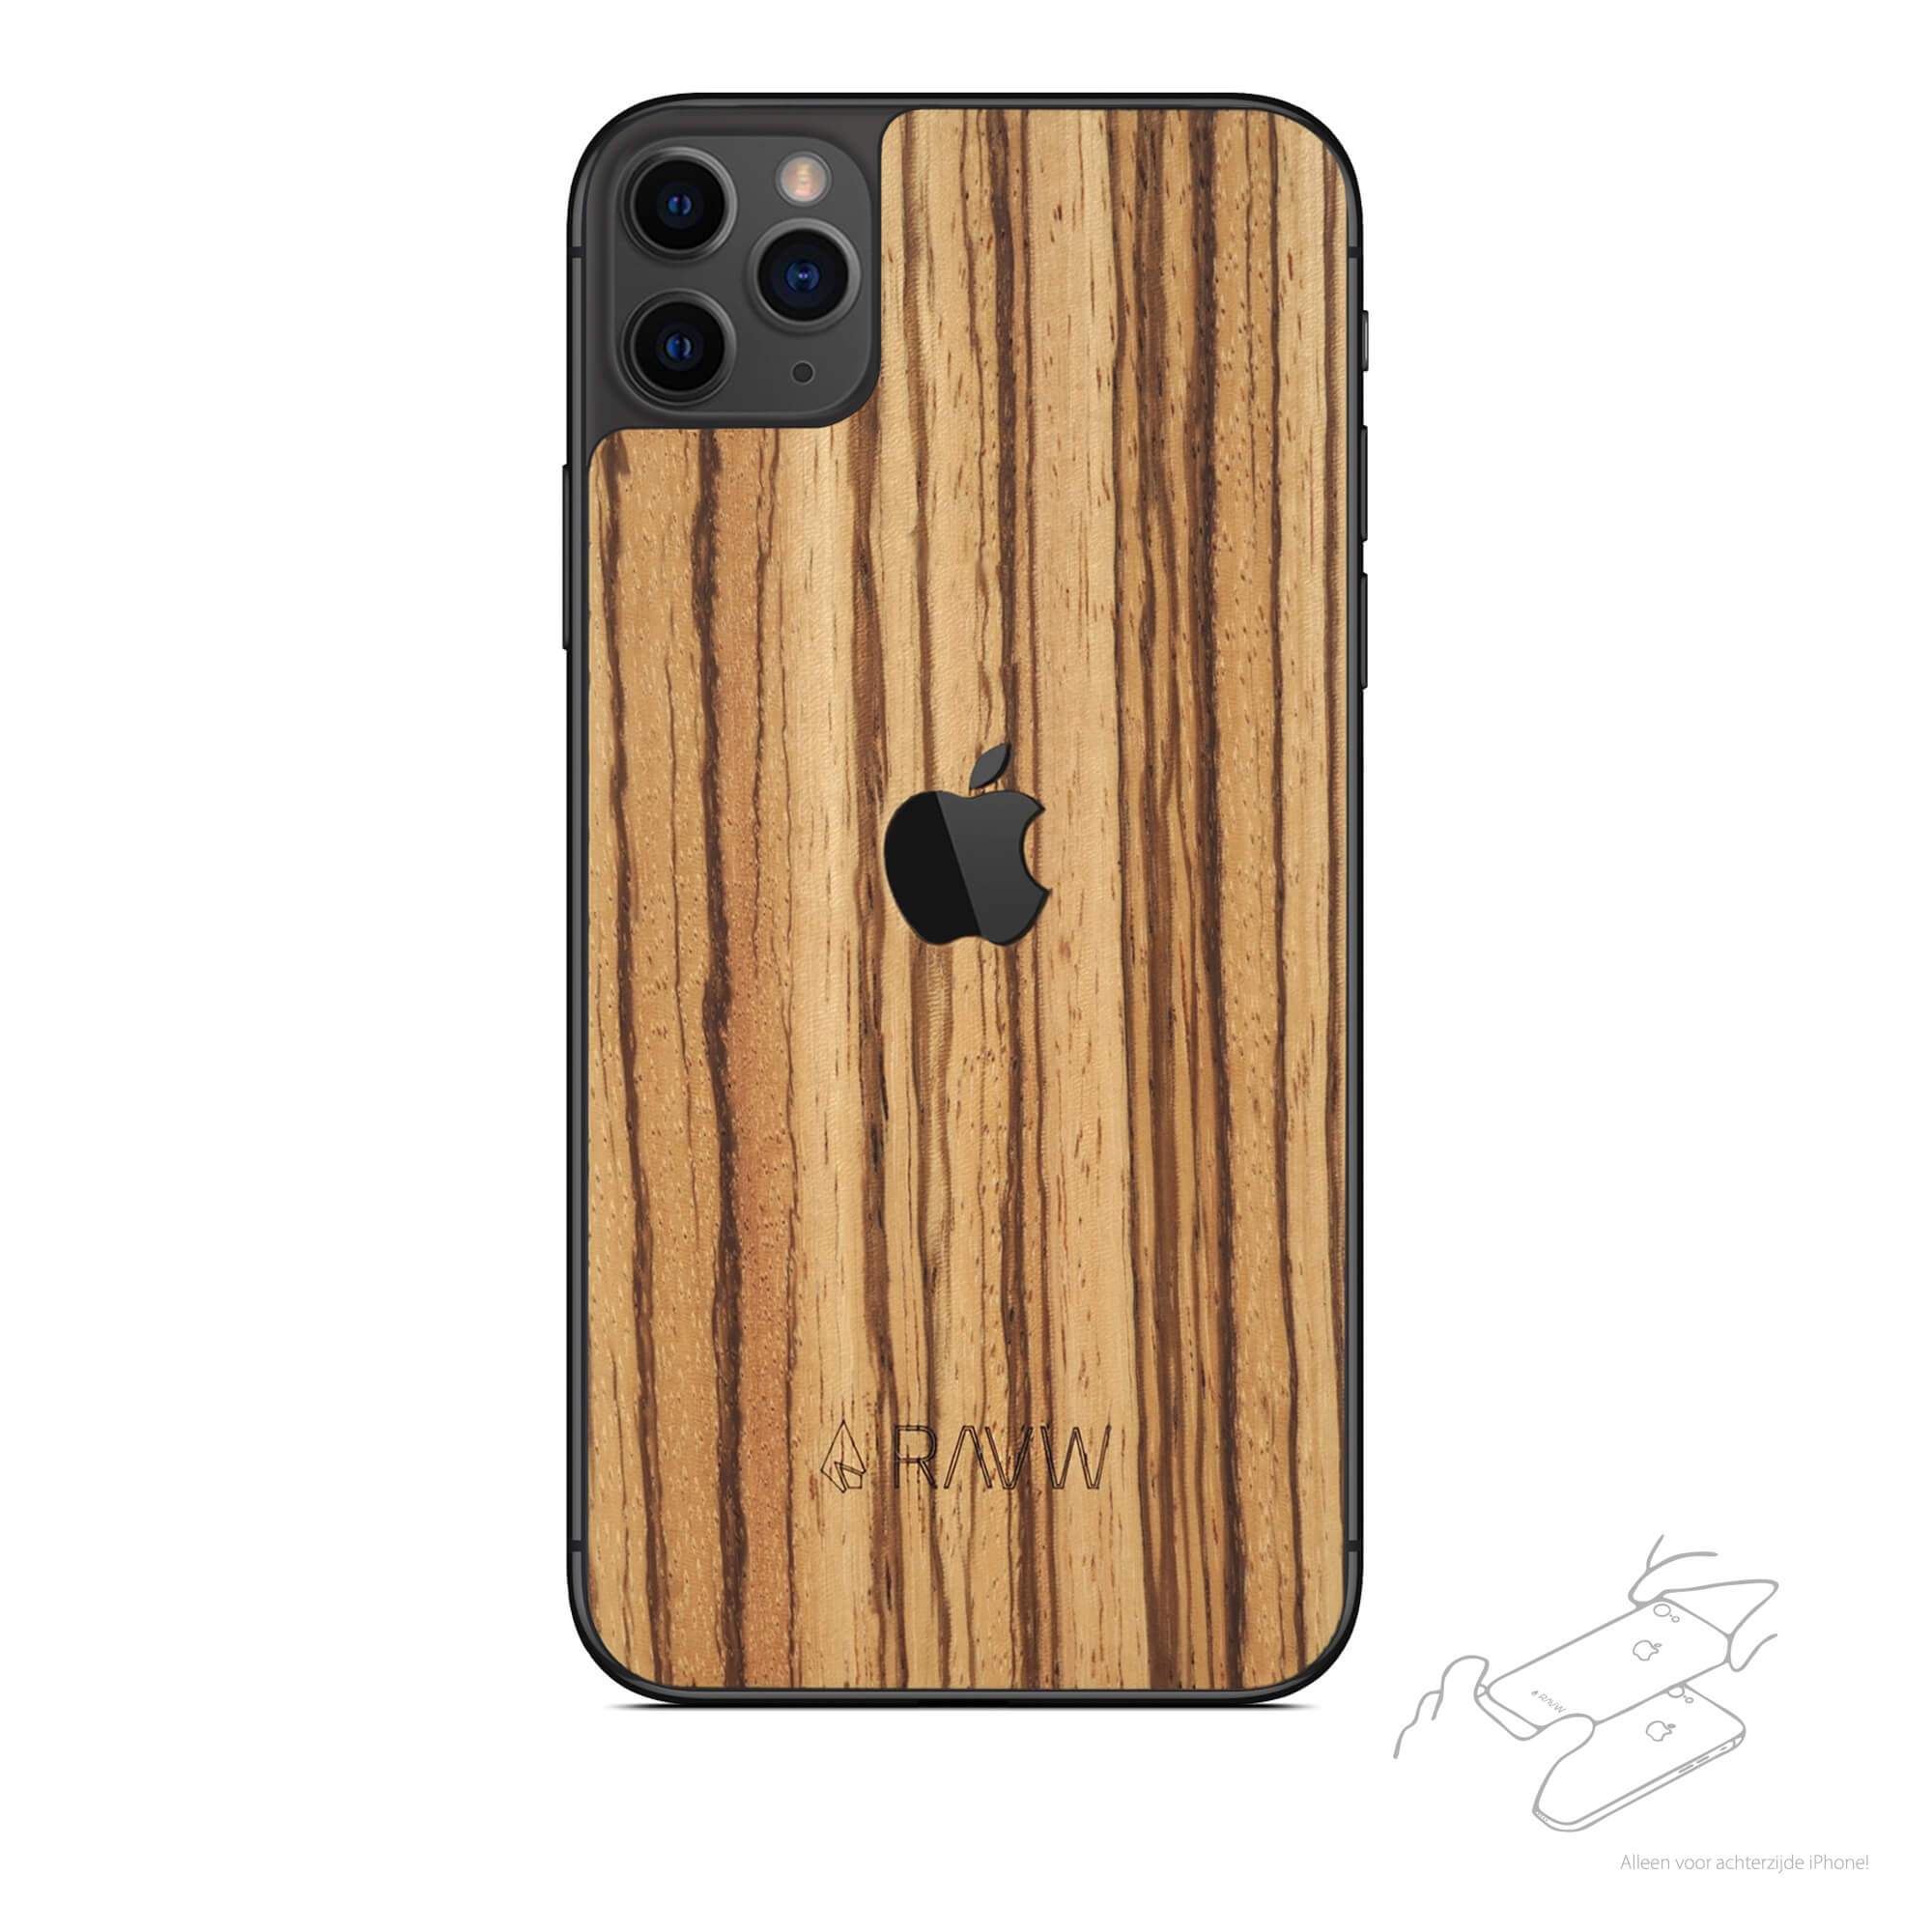 Rauw Cover - iPhone 11 Pro Max